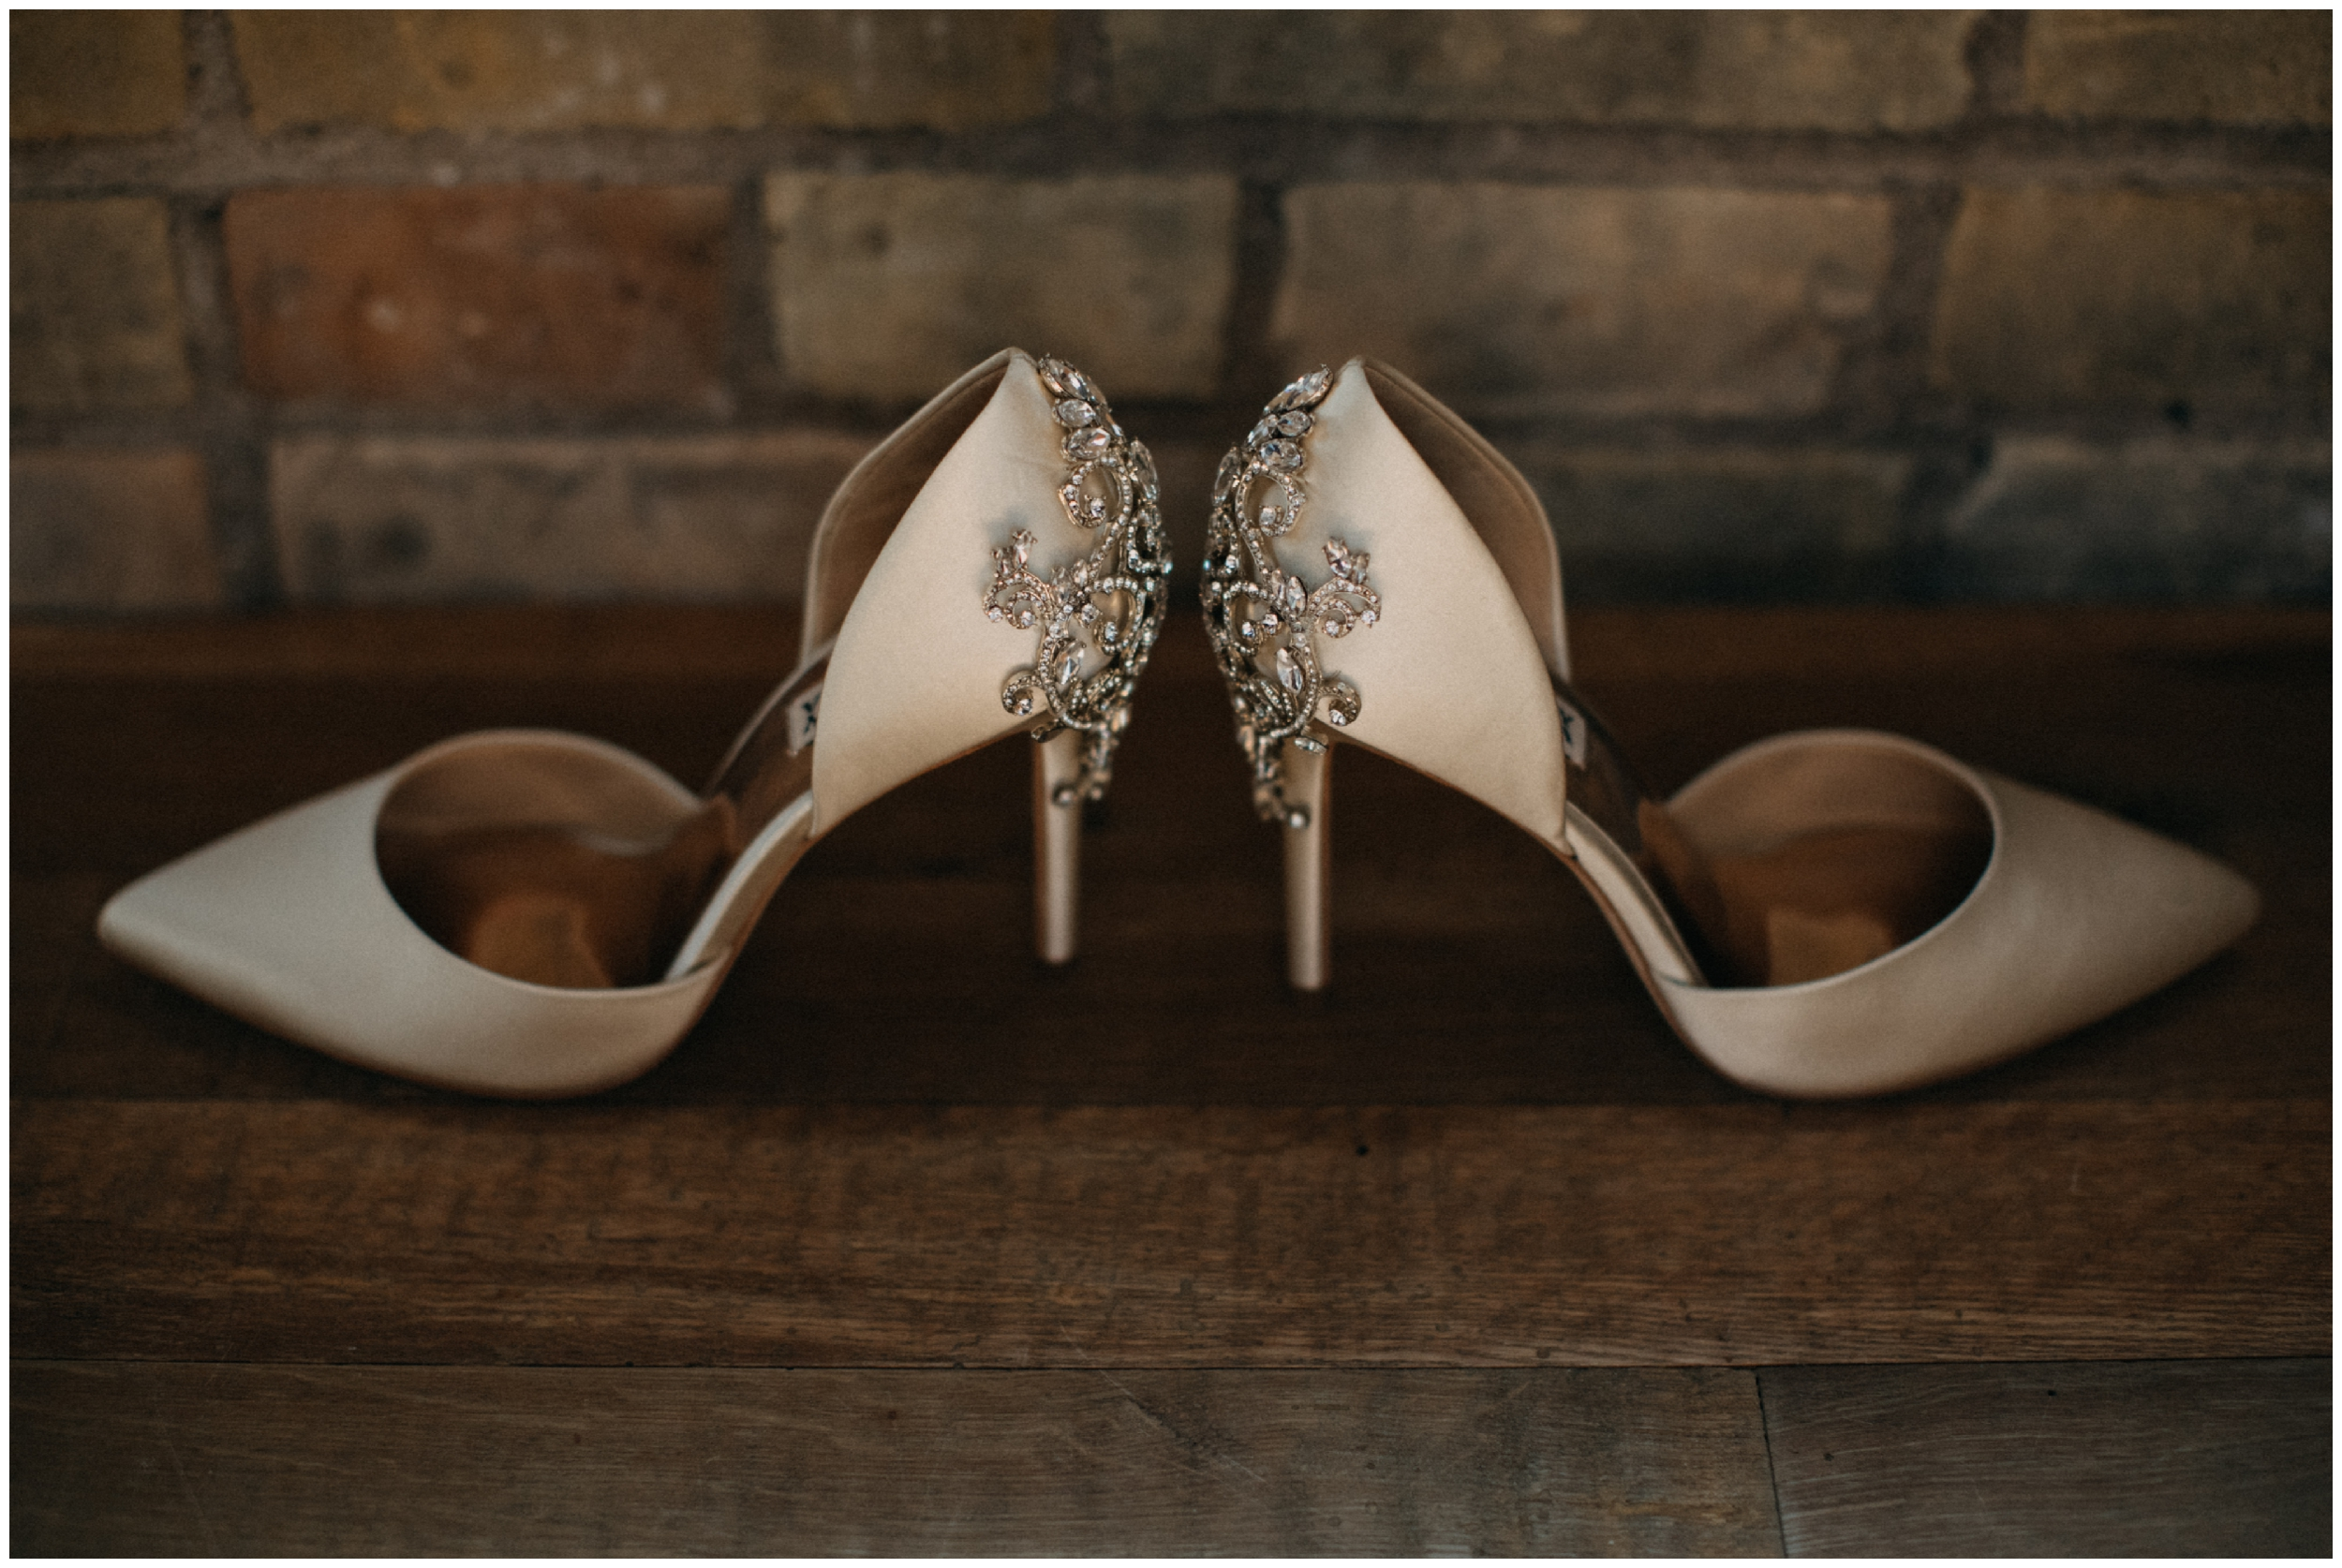 Badgley Mischka wedding shoes at the Hewing Hotel